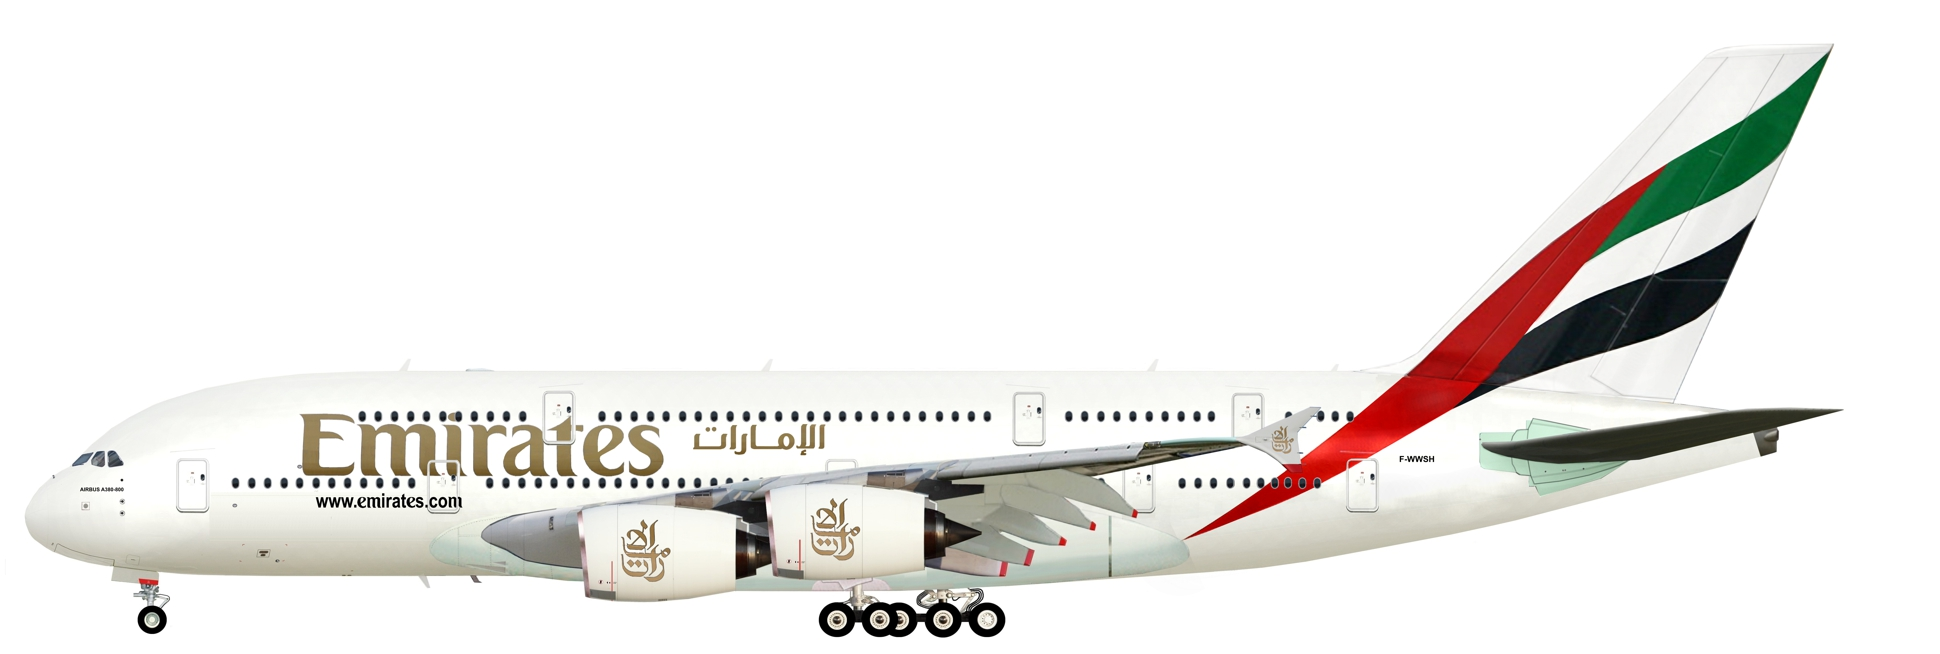 Airbus A330  Википедия